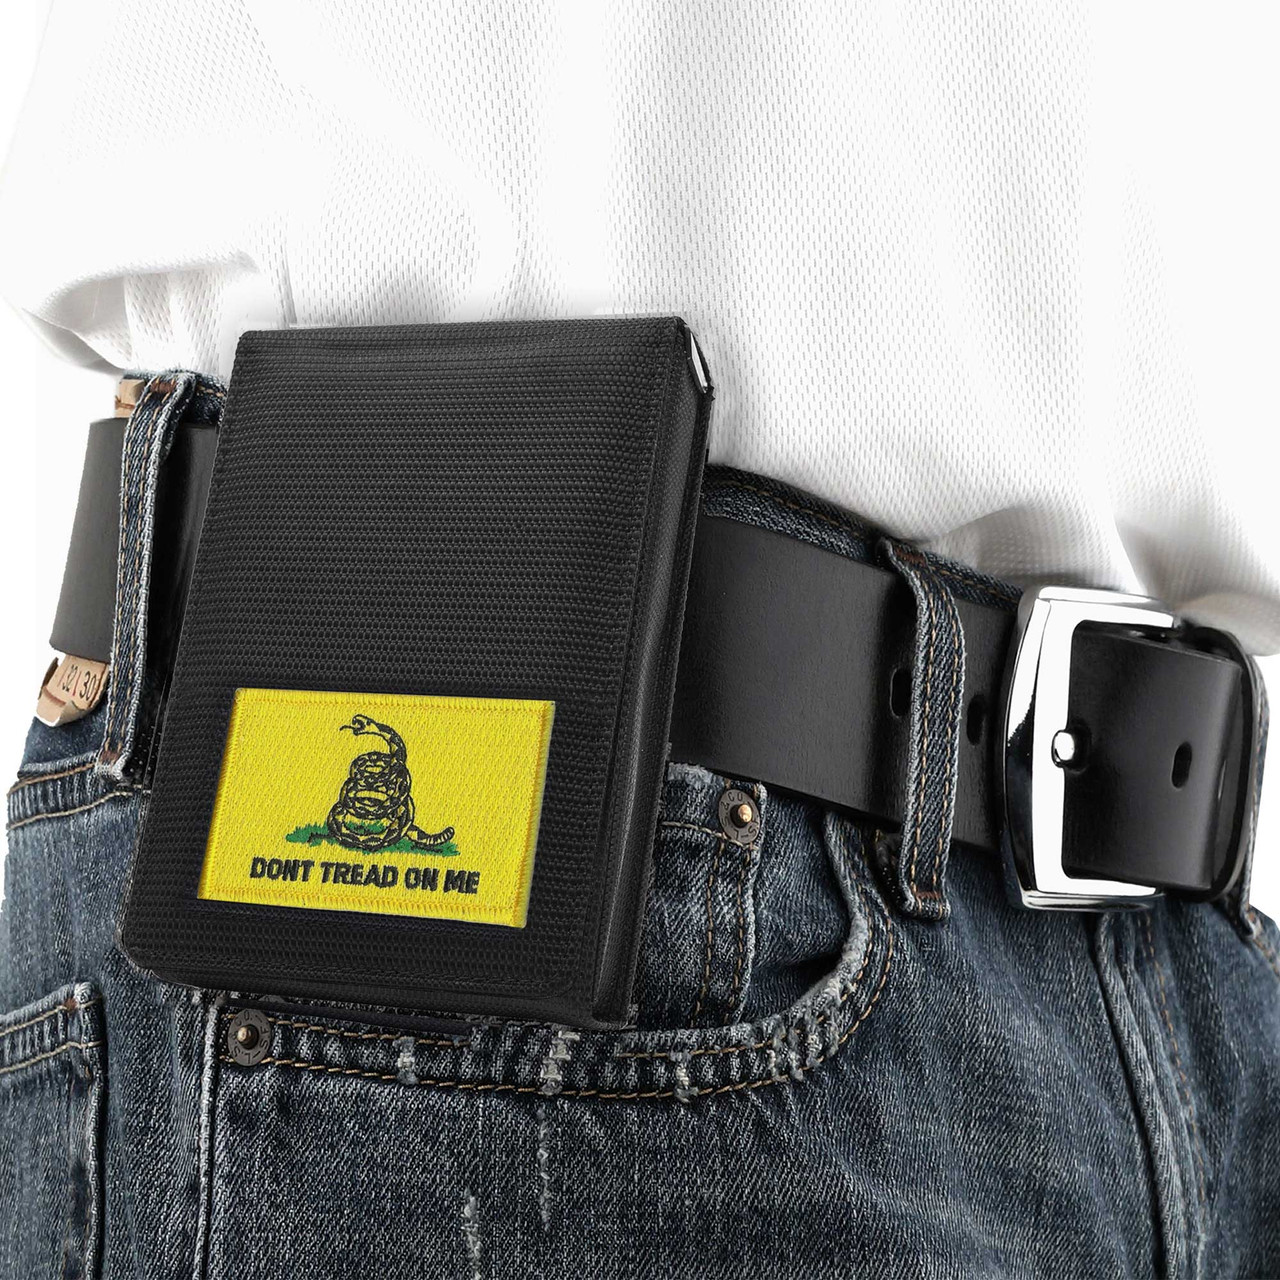 FN 509 Don't Tread on Me Holster